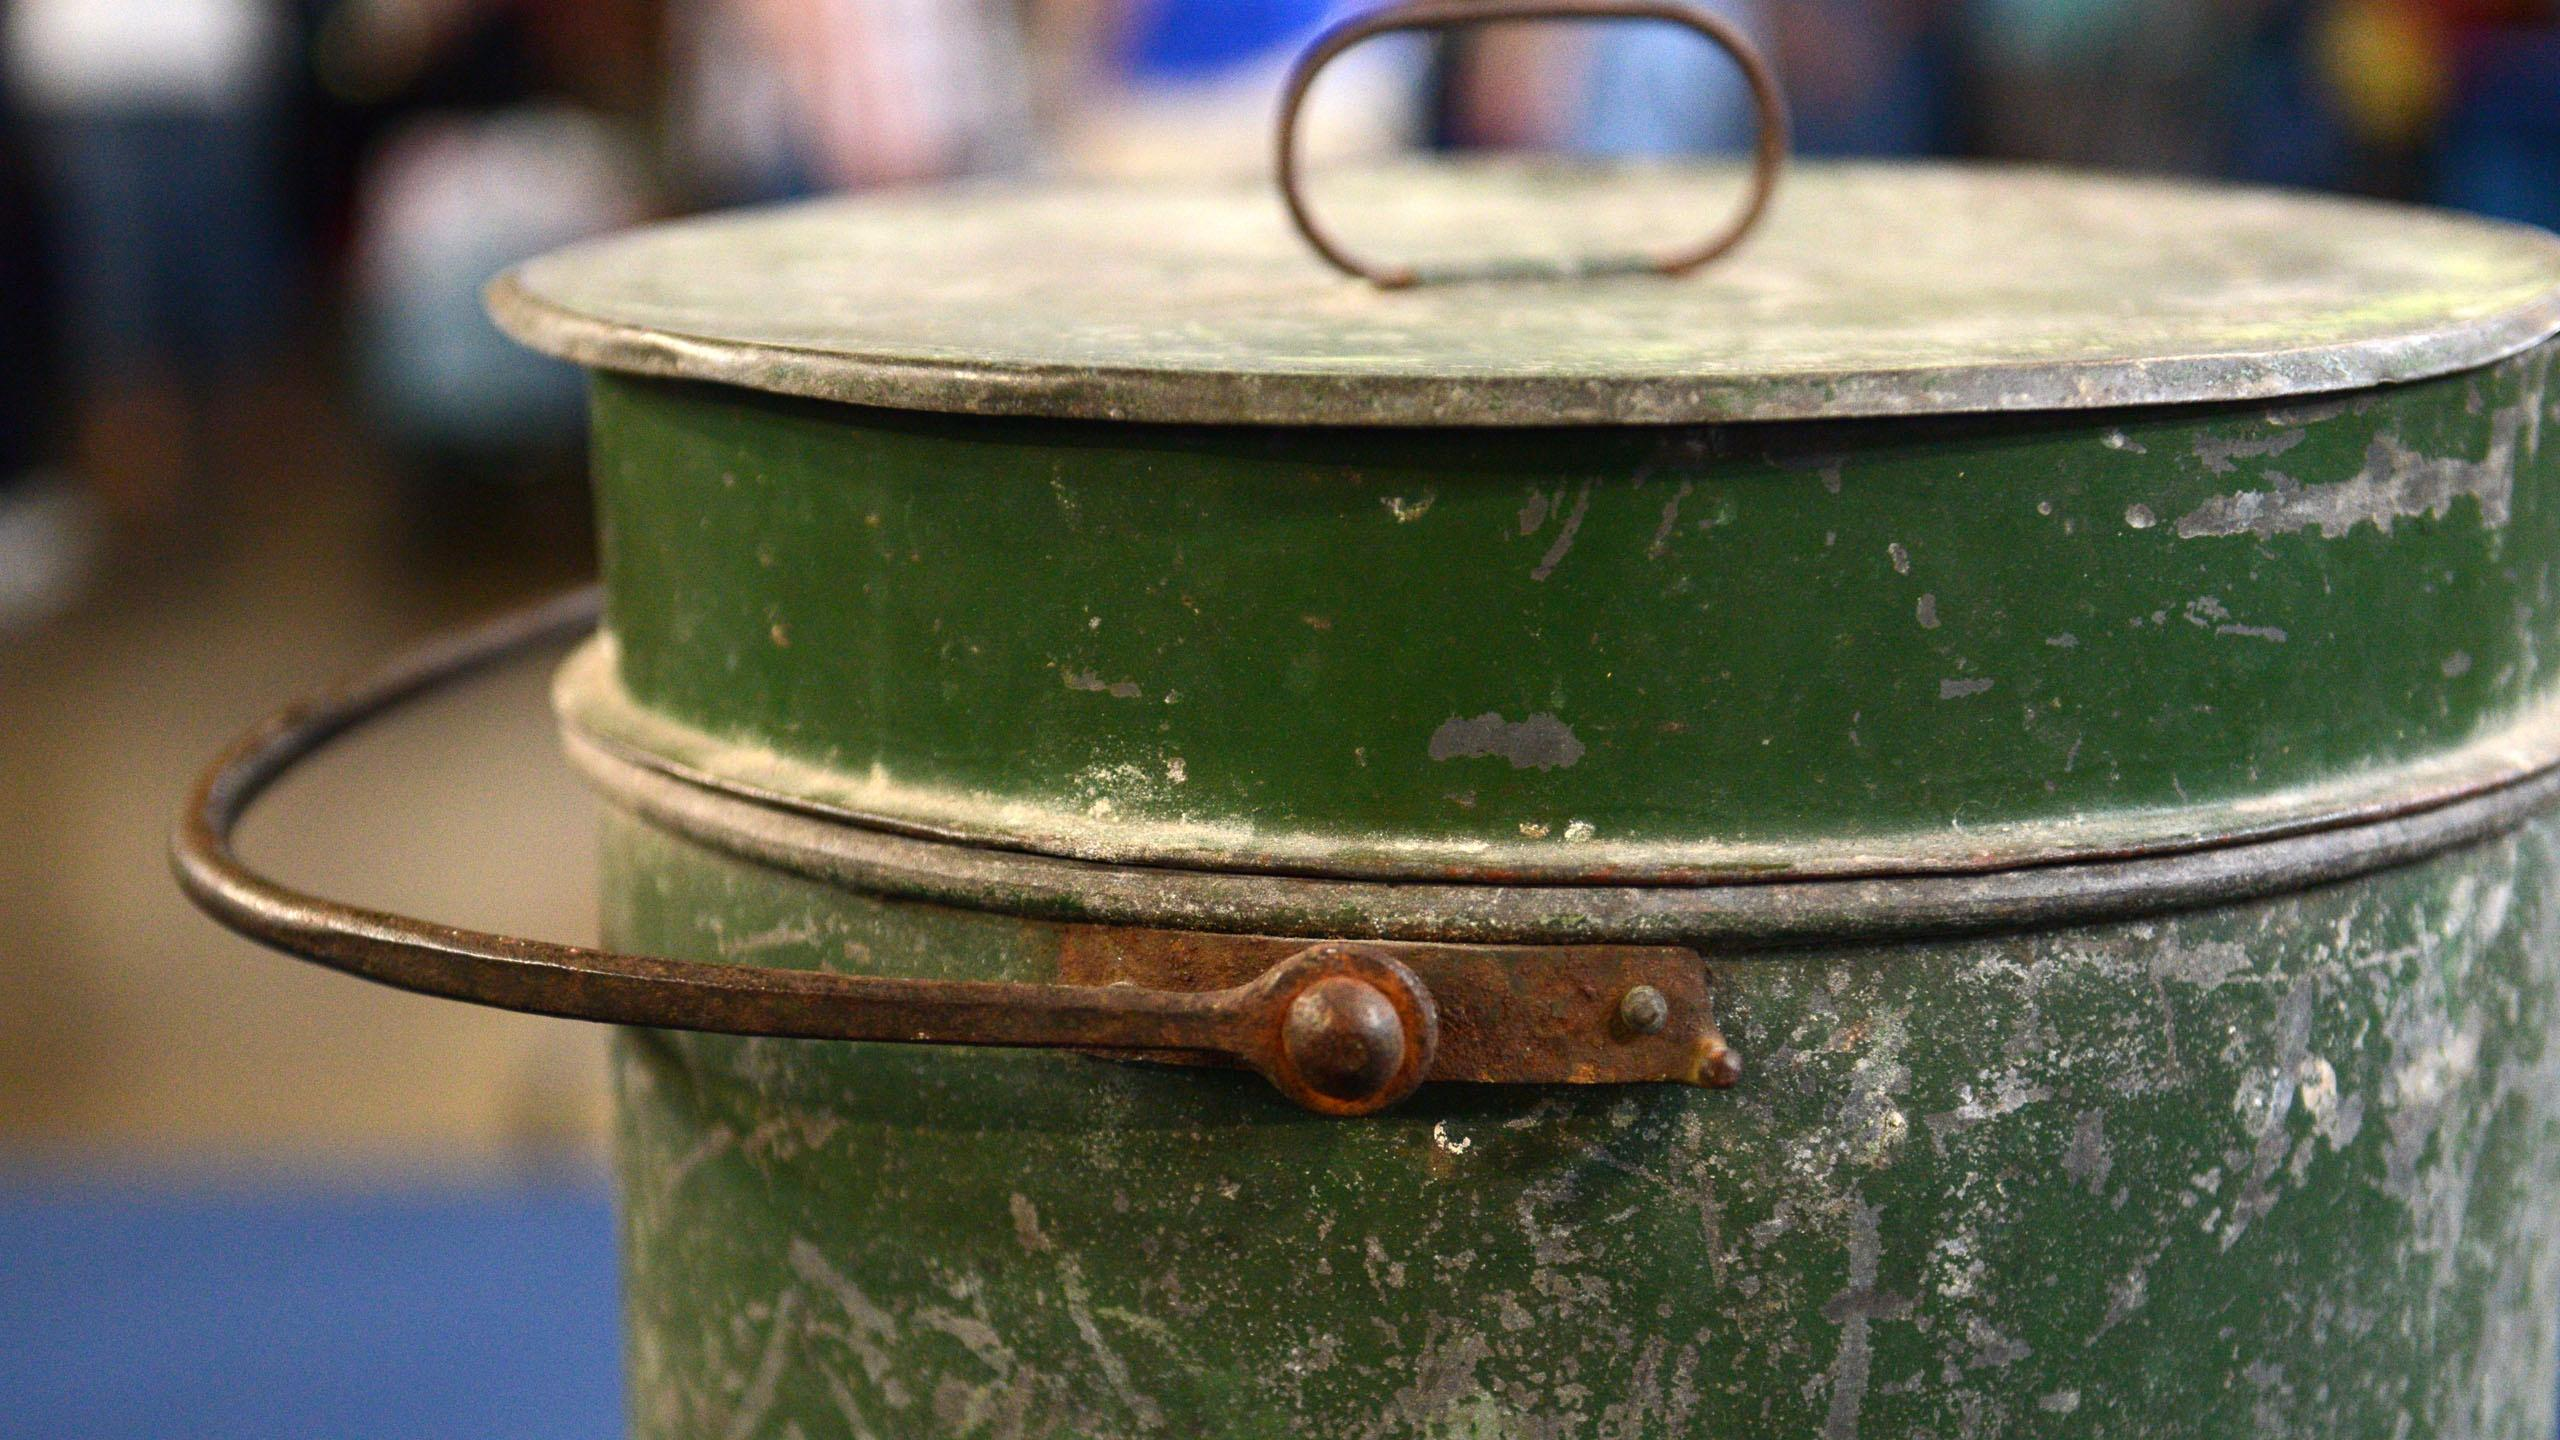 Appraisal: Mayer Portable Sanitation Pot, ca. 1840